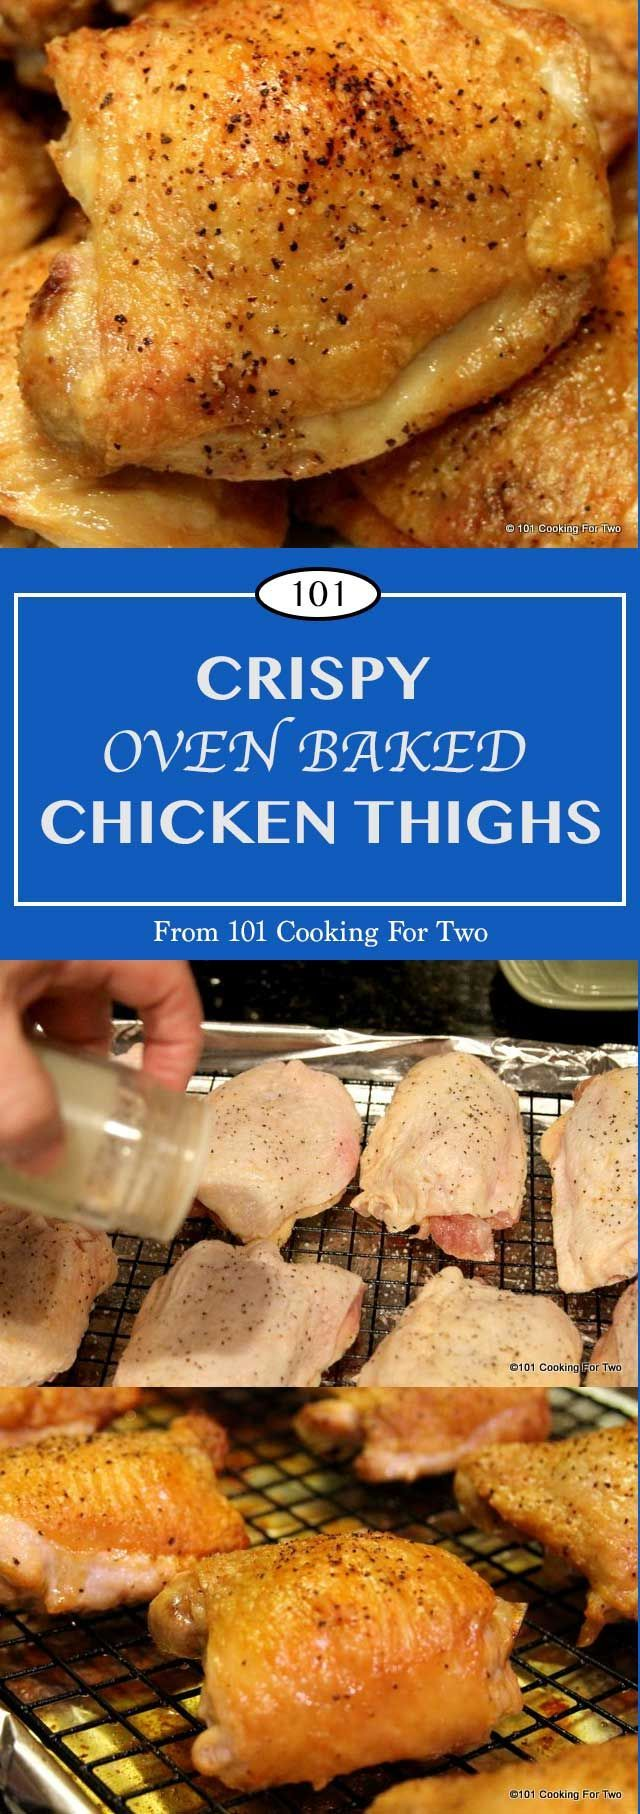 Fast Cooking Ovens Best 25 Convection Oven Recipes Ideas On Pinterest Convection